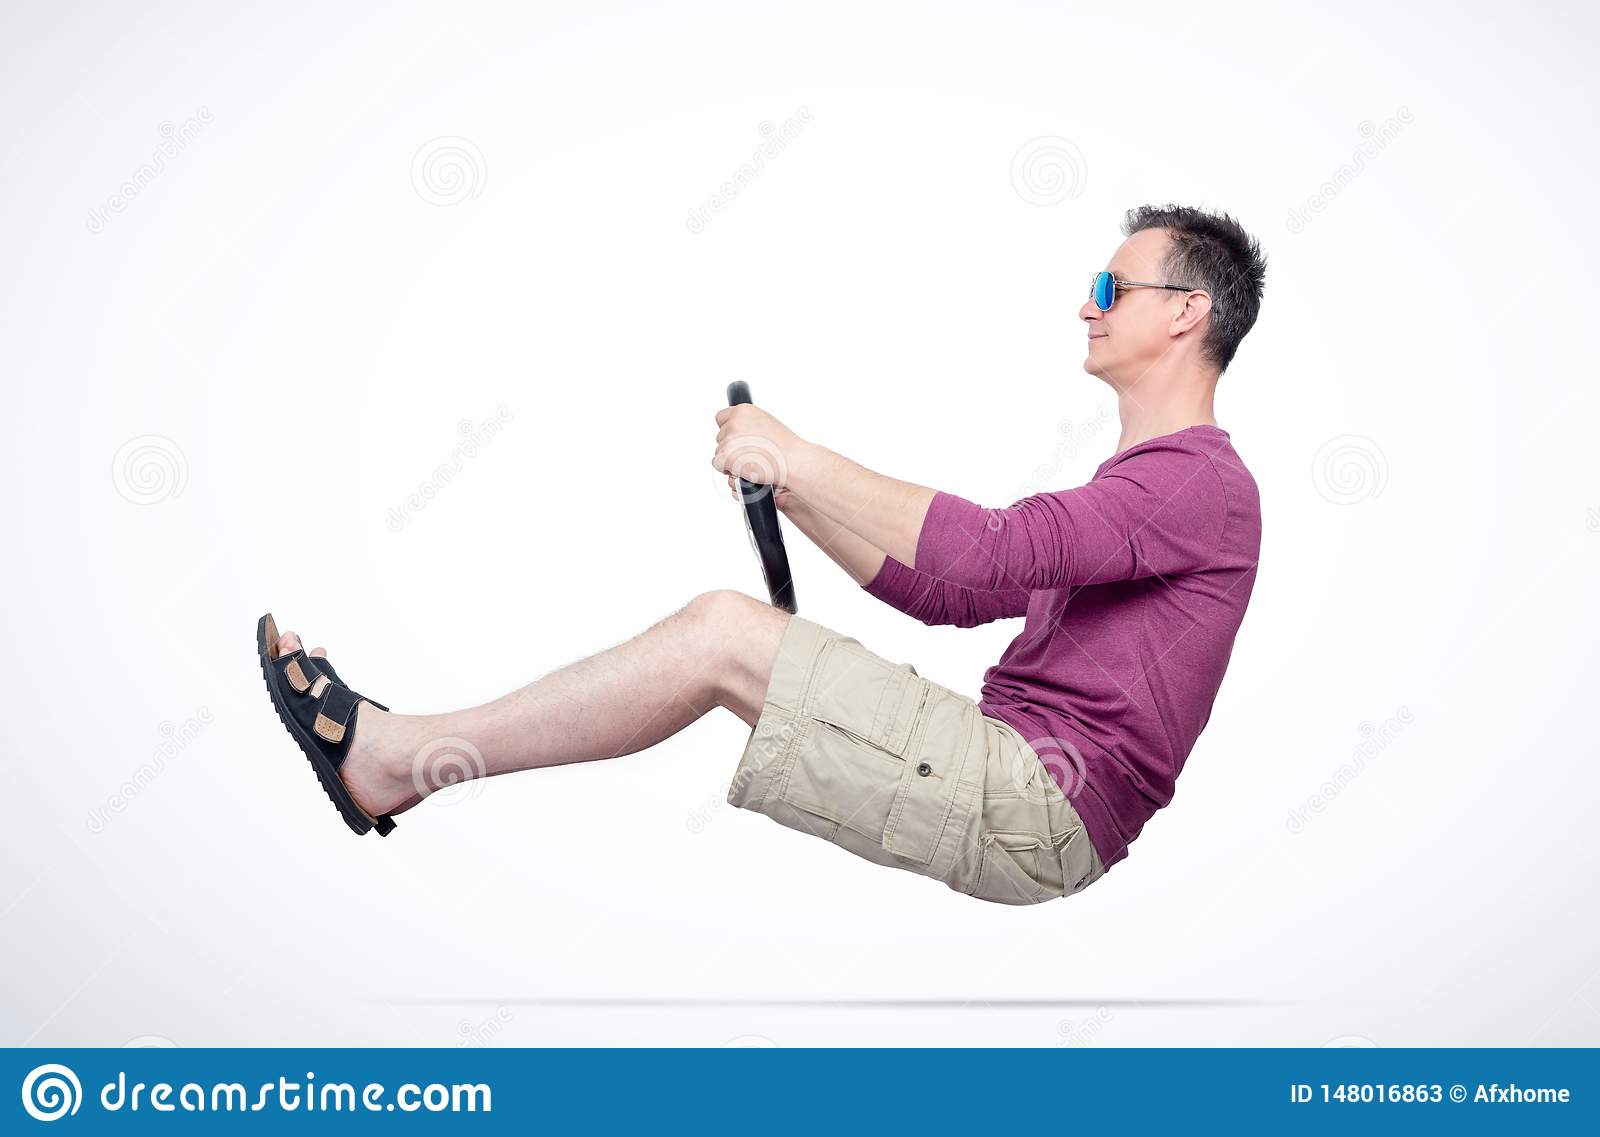 Man in sunglasses, shorts, red t-shirt and sandals drives a car with a steering wheel, on light background. Auto driver concept